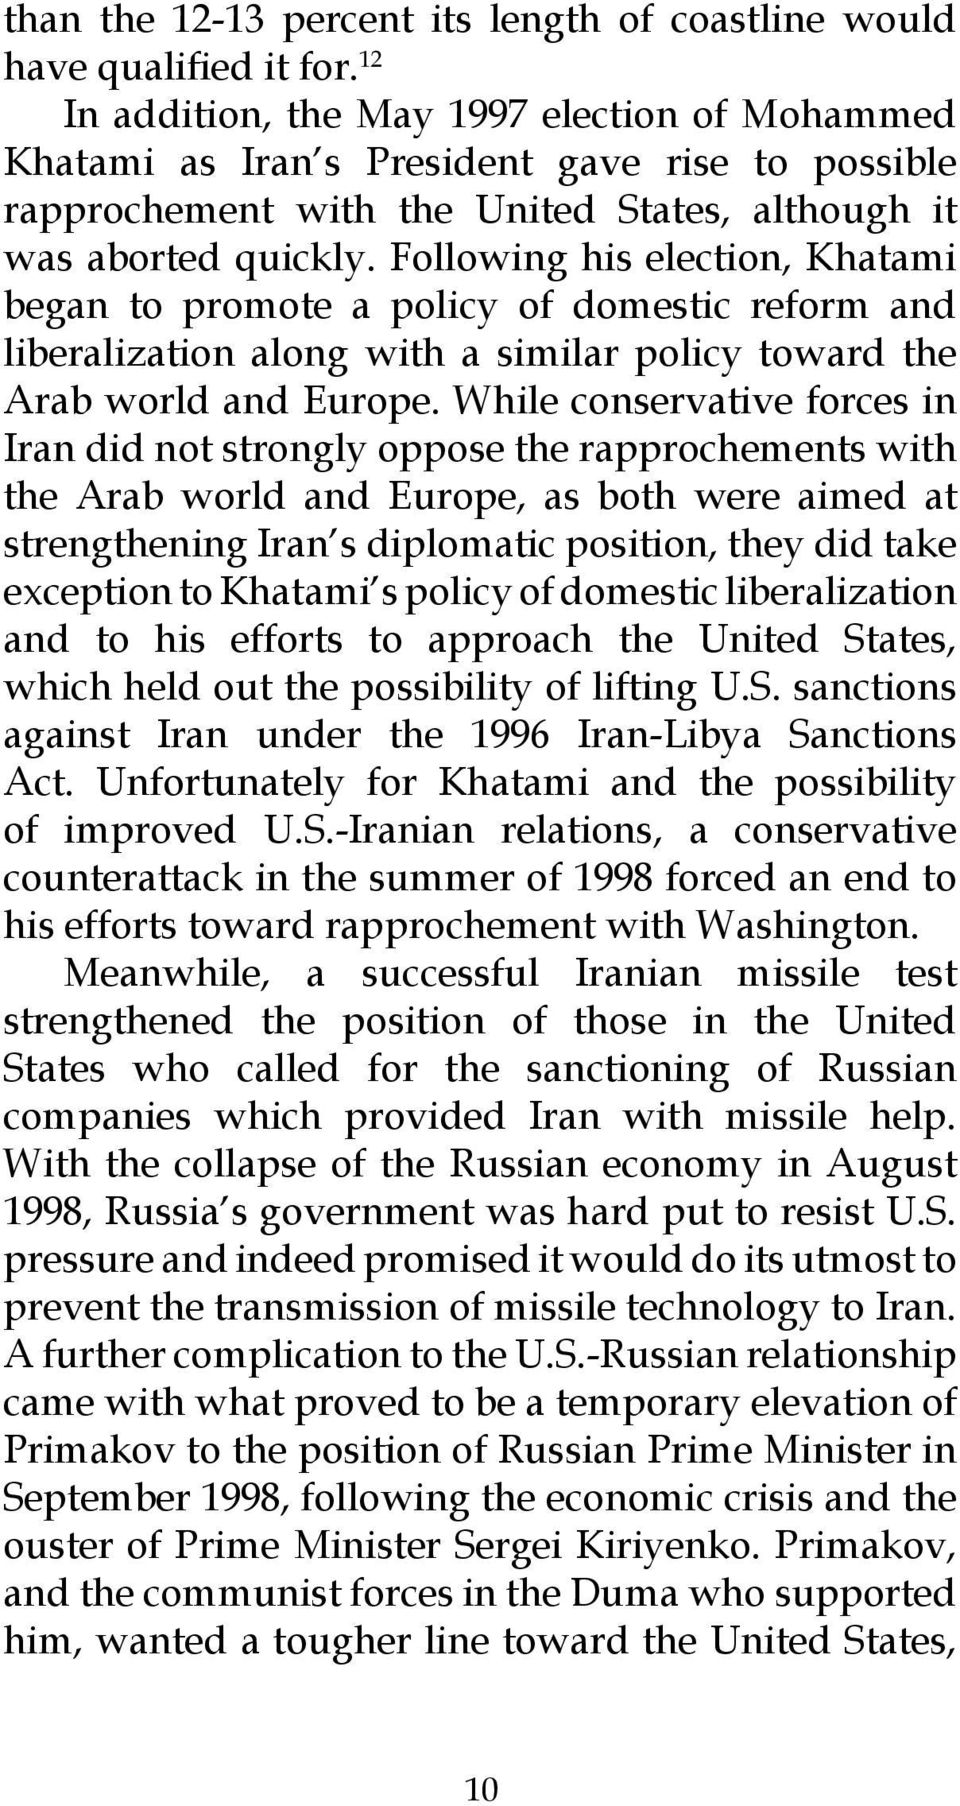 Following his election, Khatami began to promote a policy of domestic reform and liberalization along with a similar policy toward the Arab world and Europe.